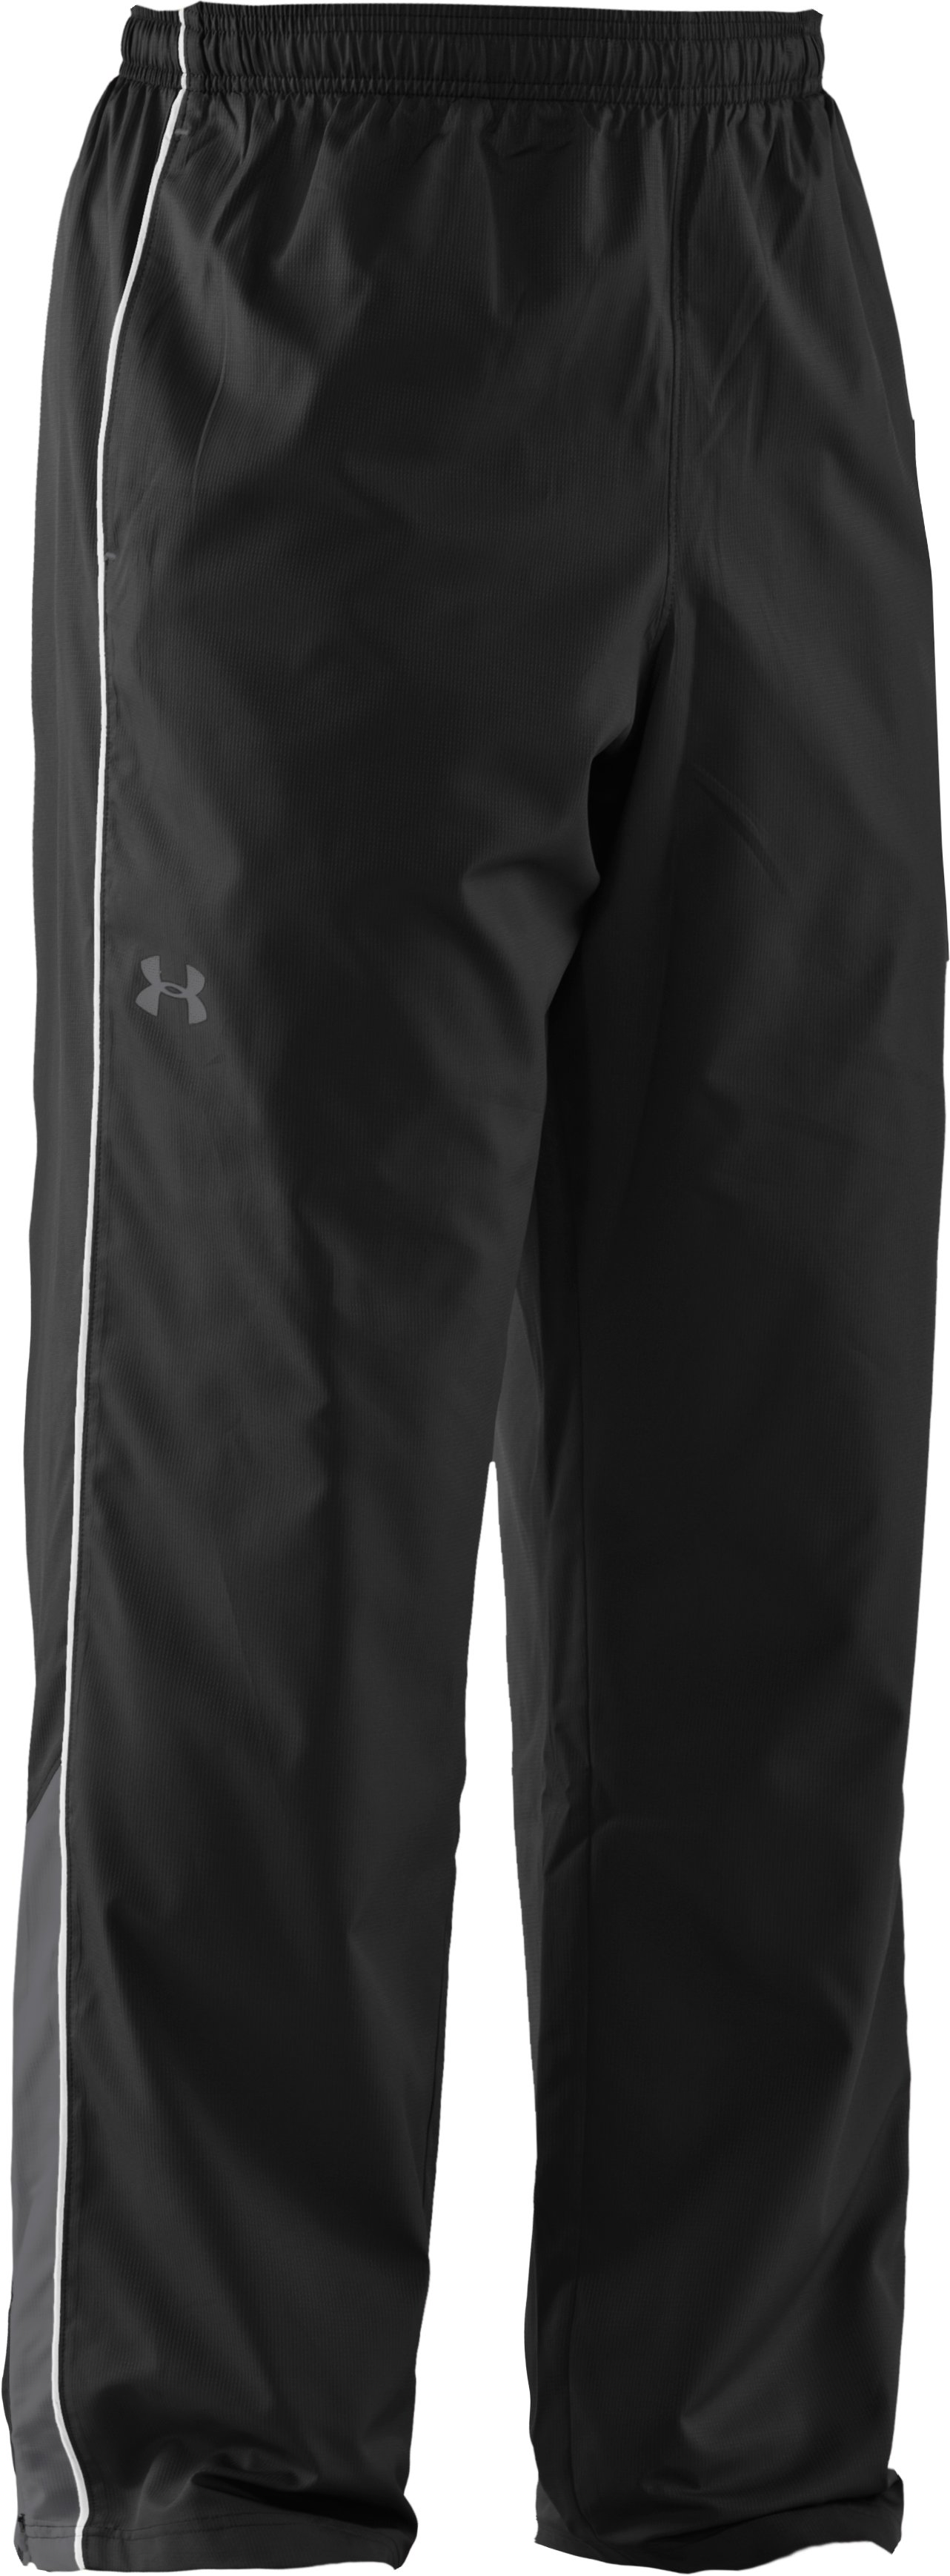 Men's UA Bandito Woven Warm-Up Pants, Black